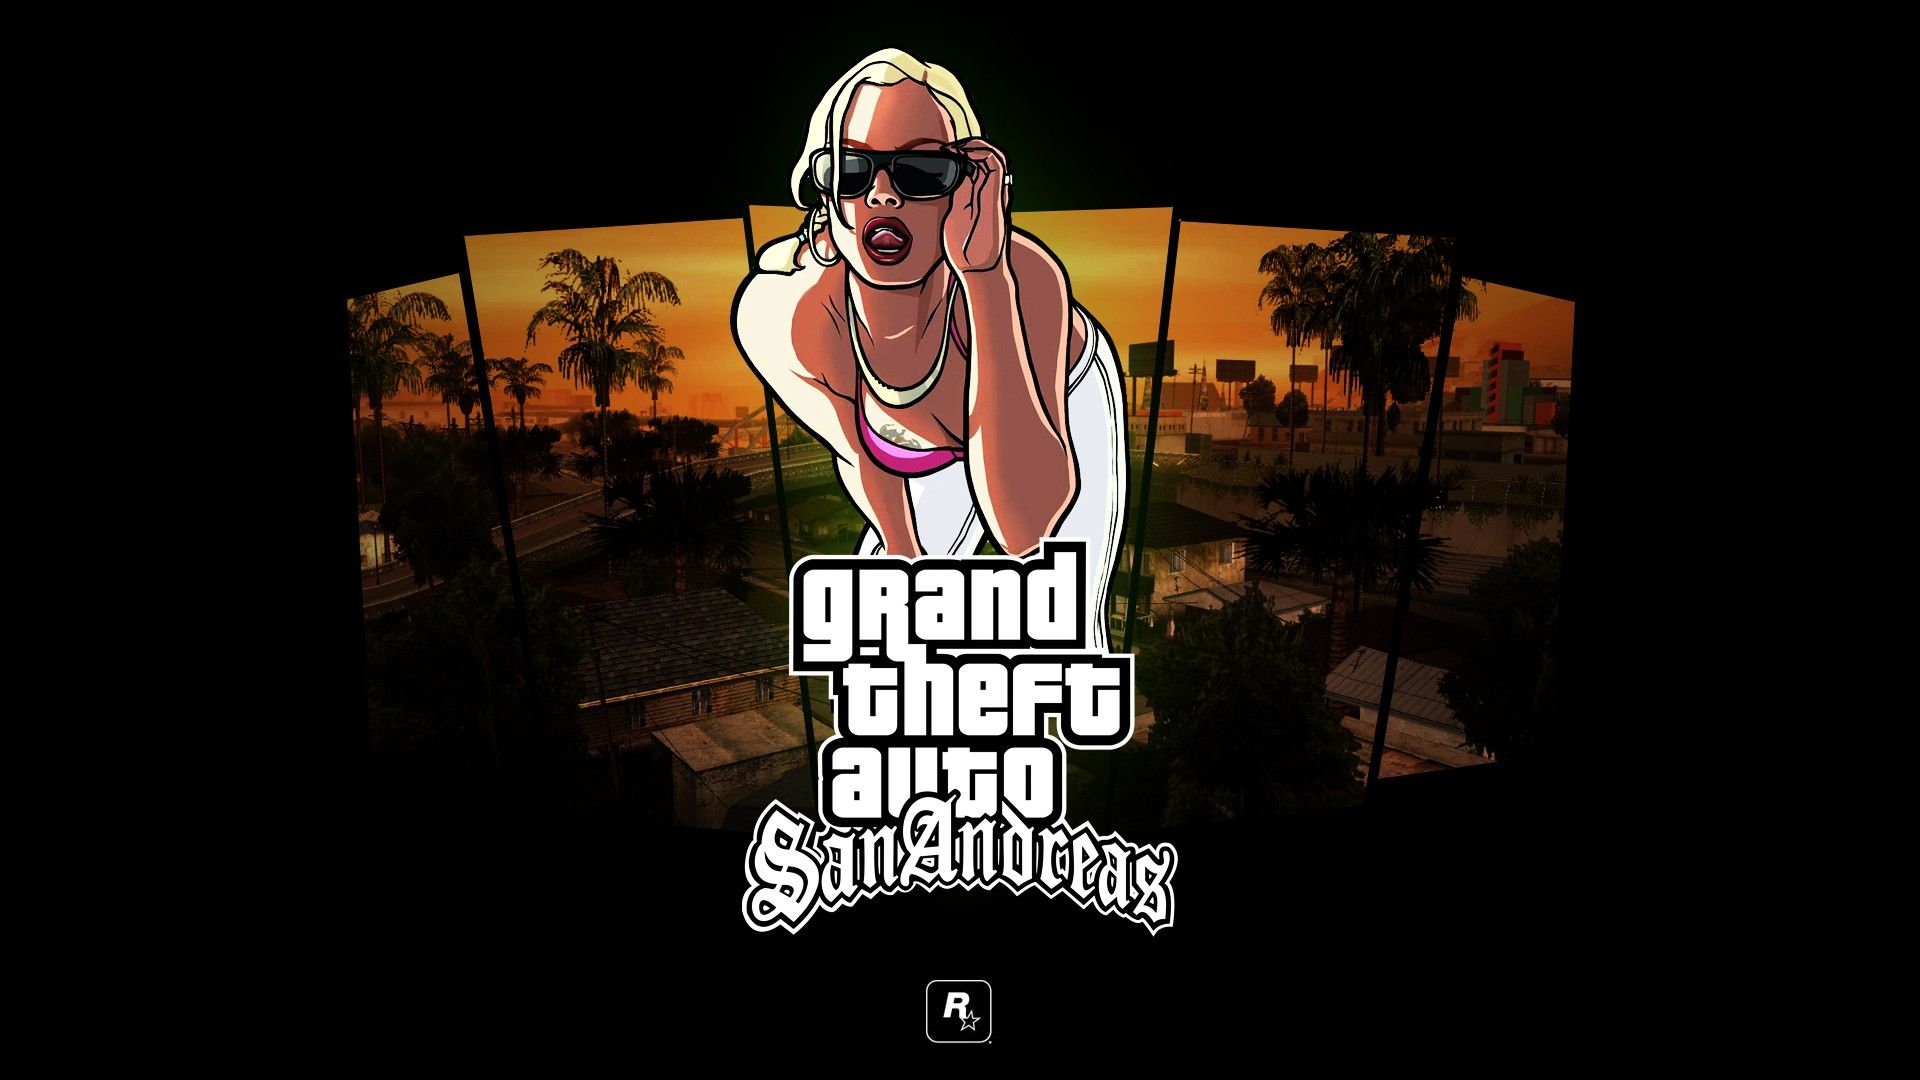 Grand Theft Auto San Andreas Hd Wallpapers Backgrounds